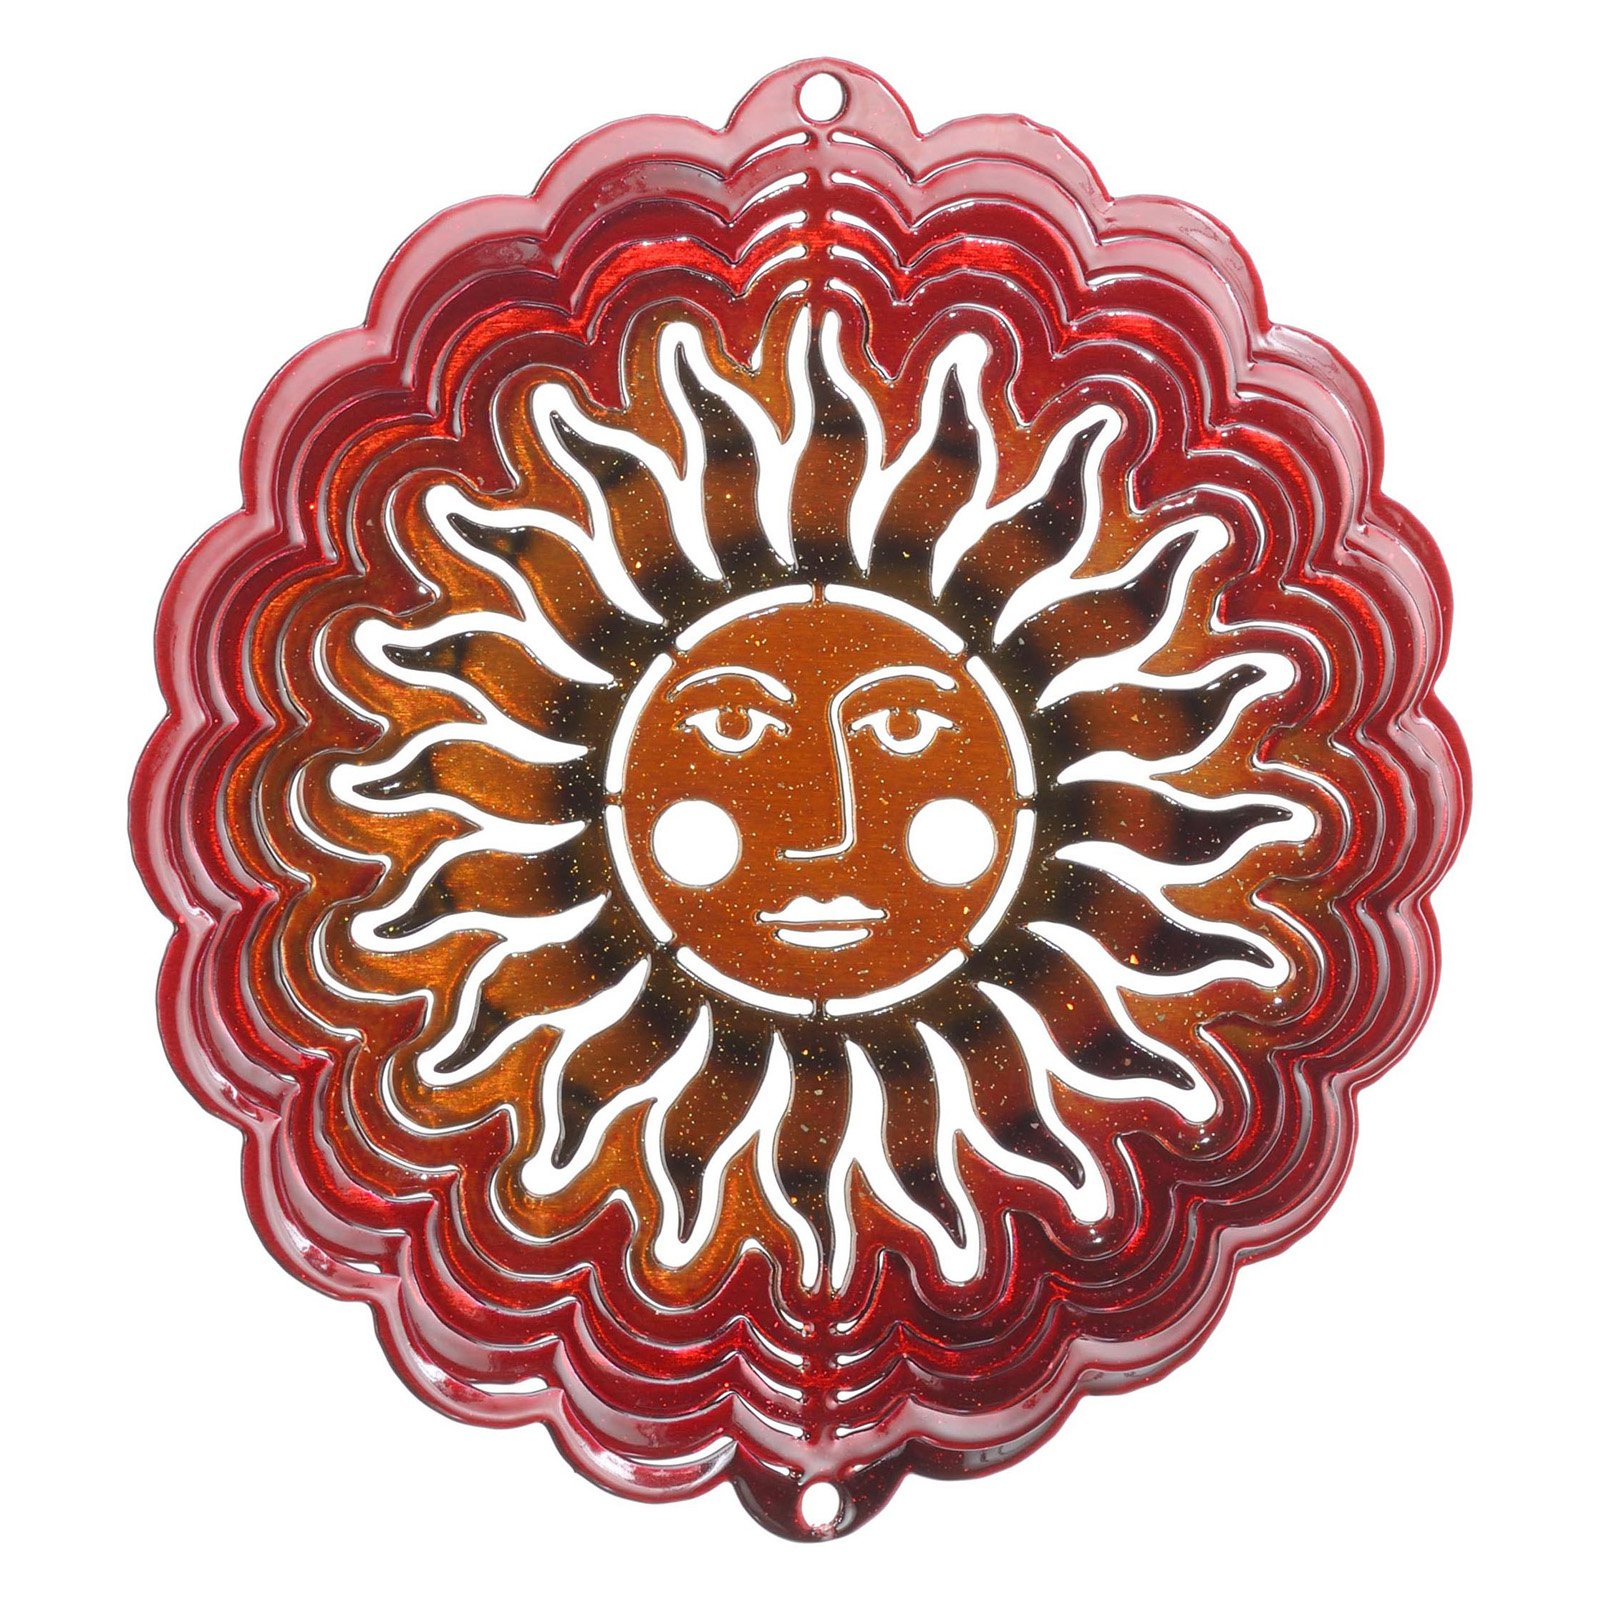 Next Innovations Sun Face Antique Red Copper Wind Spinner by Next Innovations